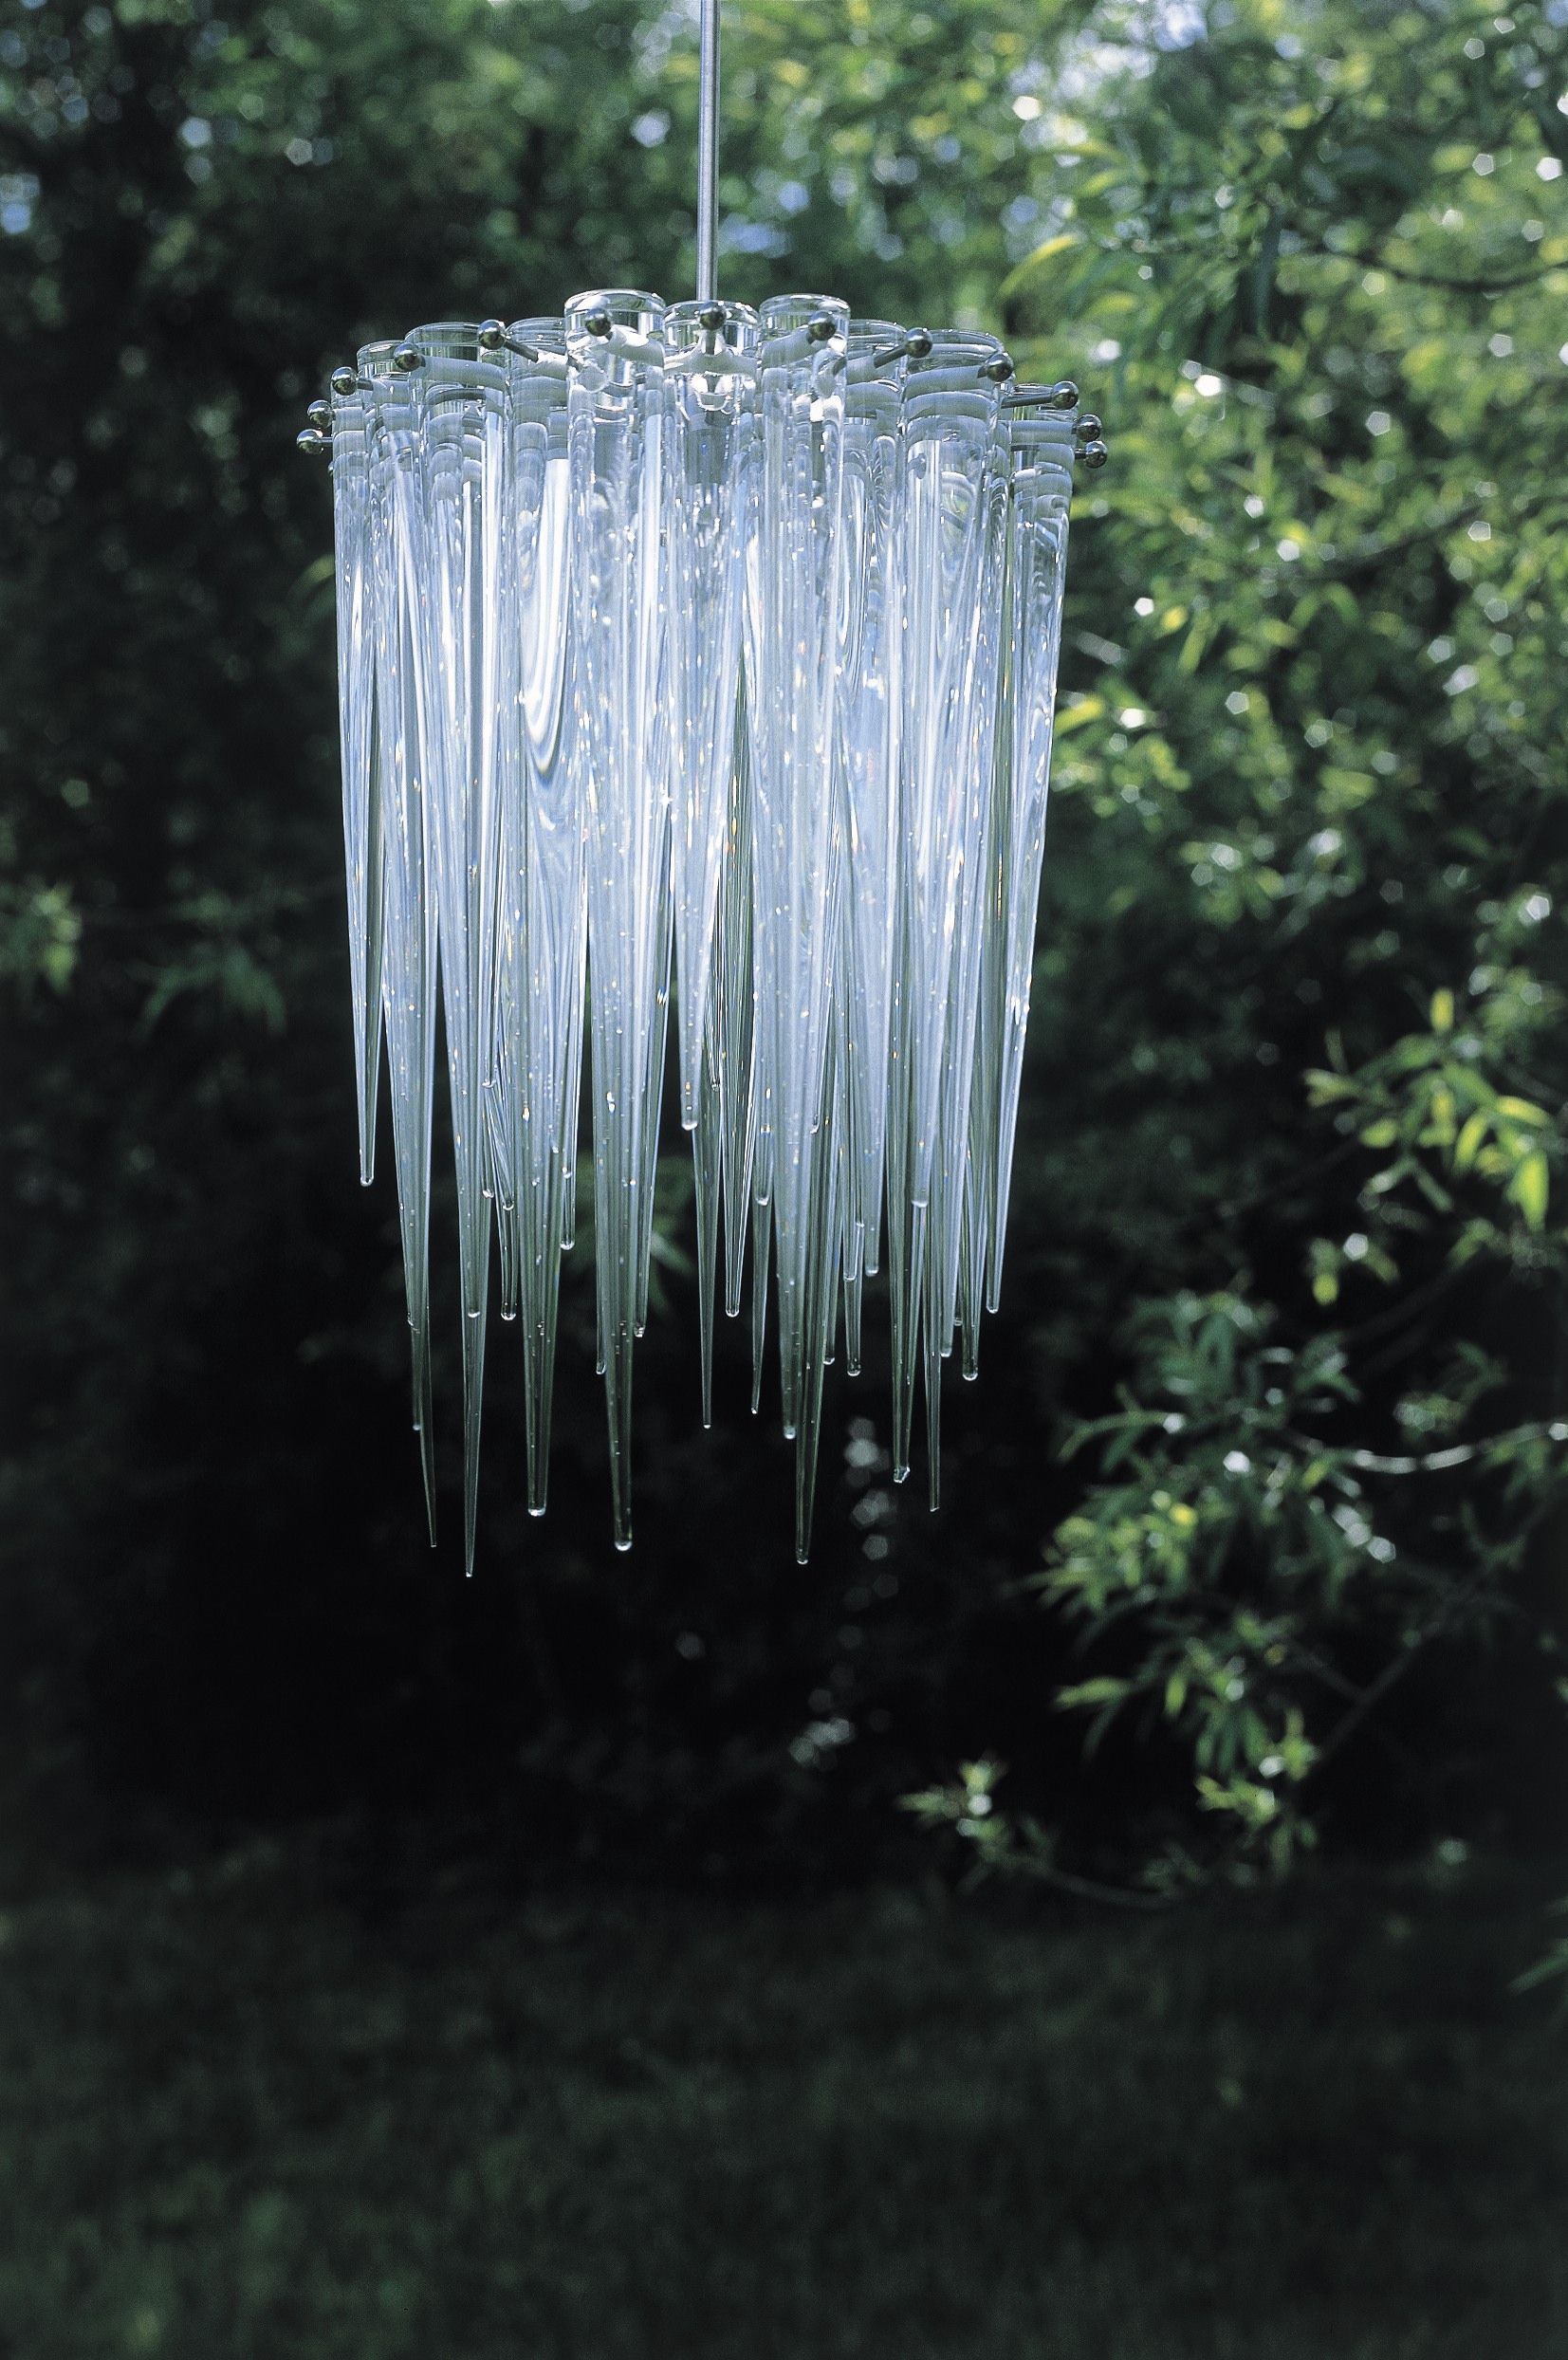 Icicle chandelier by neil wilkin photo guus rijven 1341914543org icicle chandelier by neil wilkin photo guus rijven 1341914543orgg 16532488 pixels aloadofball Gallery